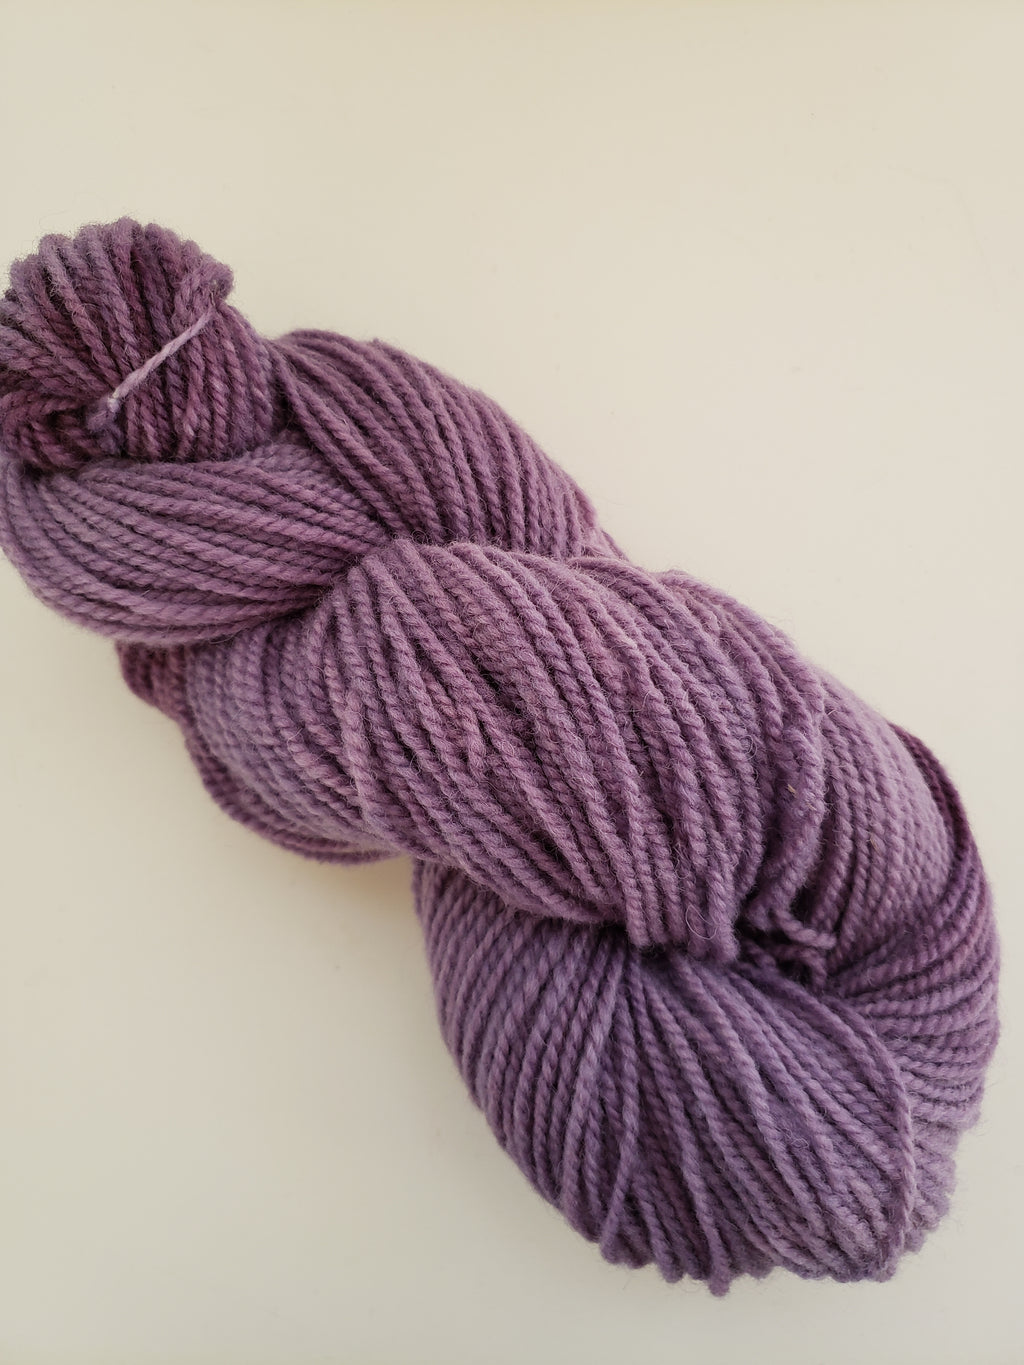 SUGAR PLUM-  Hand Dyed Shades of Purple Worsted Yarn for Rug Hooking - RSS262